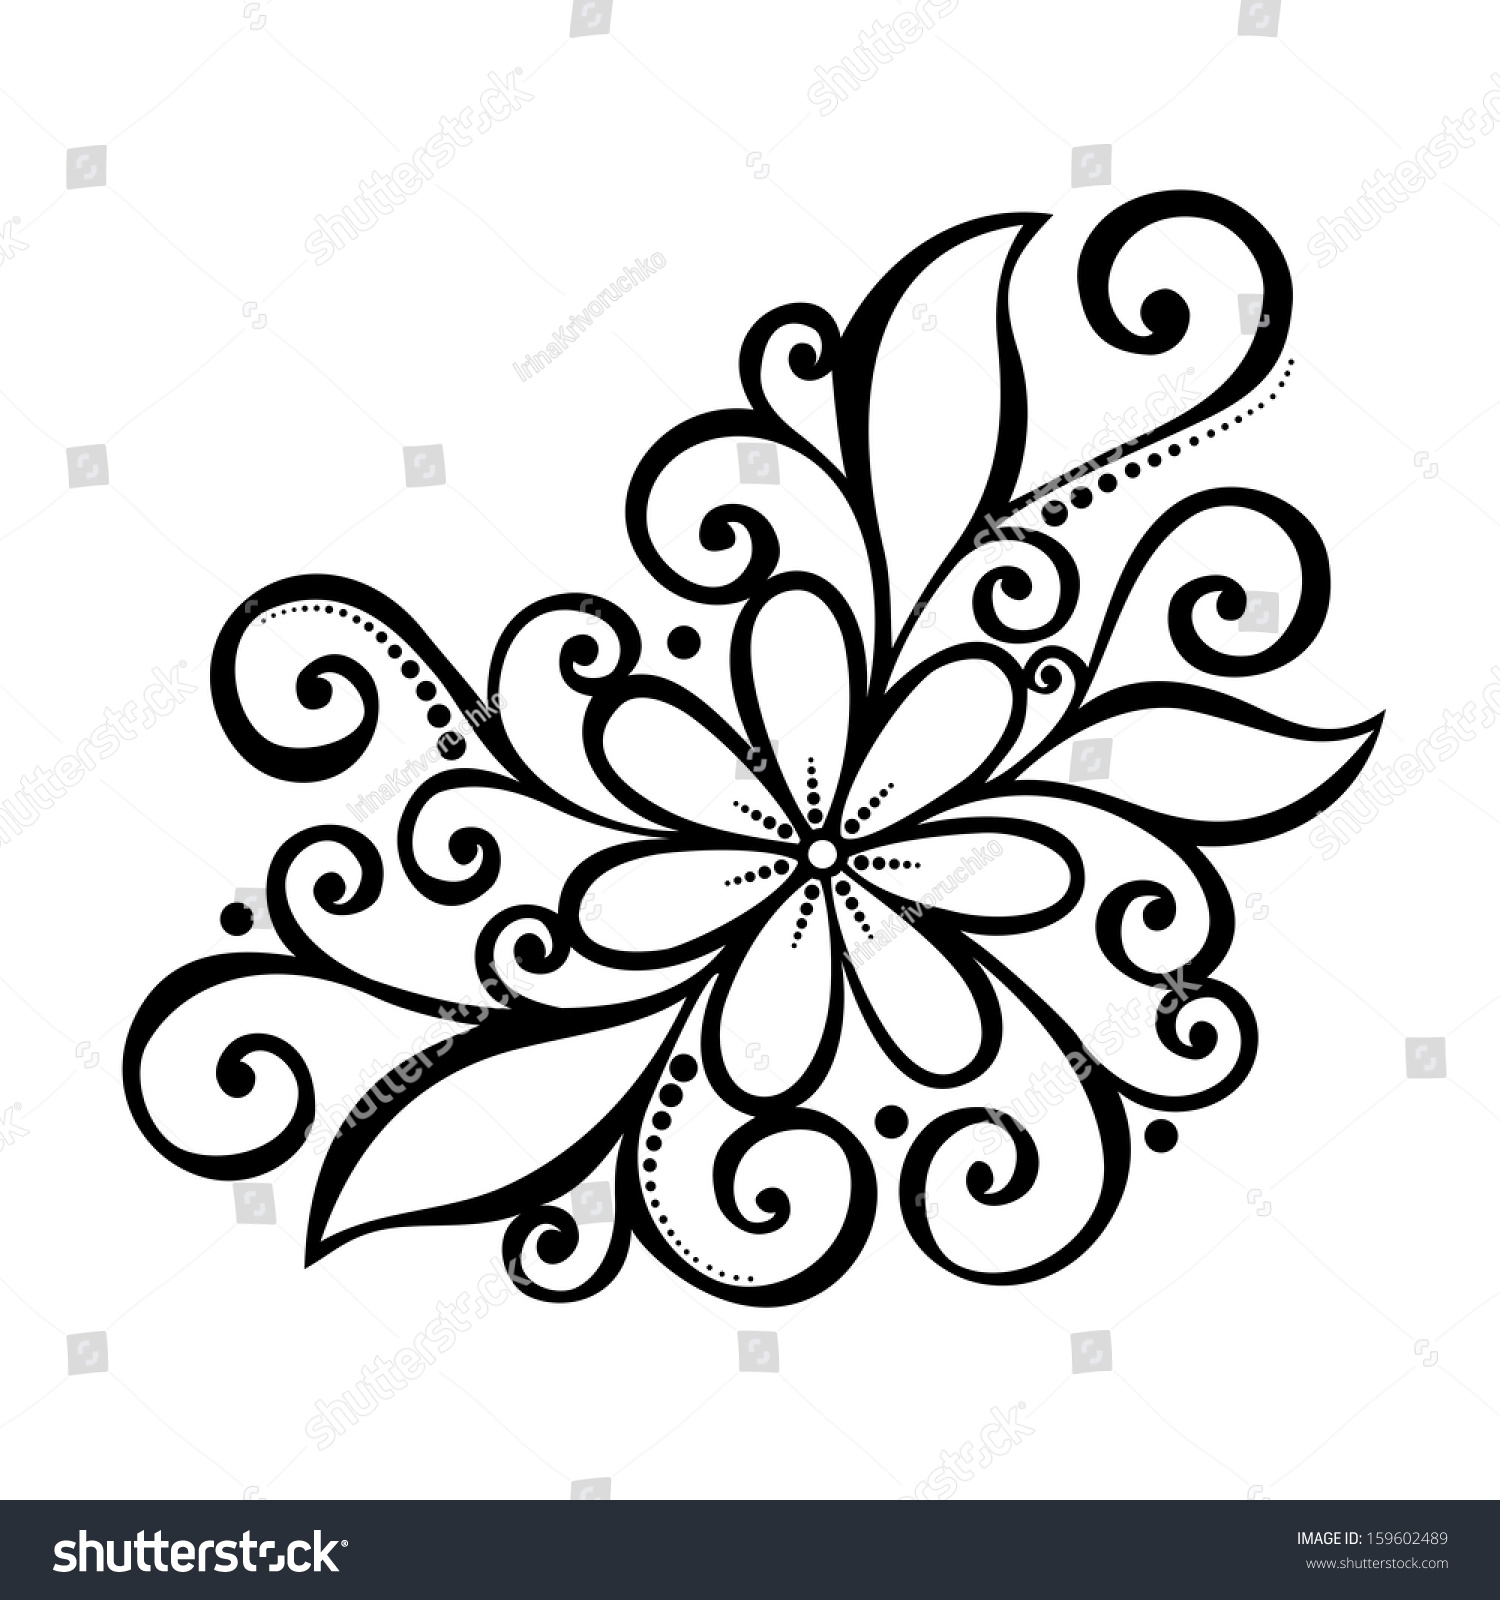 beautiful decorative flower with leaves vector patterned design beautiful decorative flower leaves vector patterned stock - Drawing Design Ideas